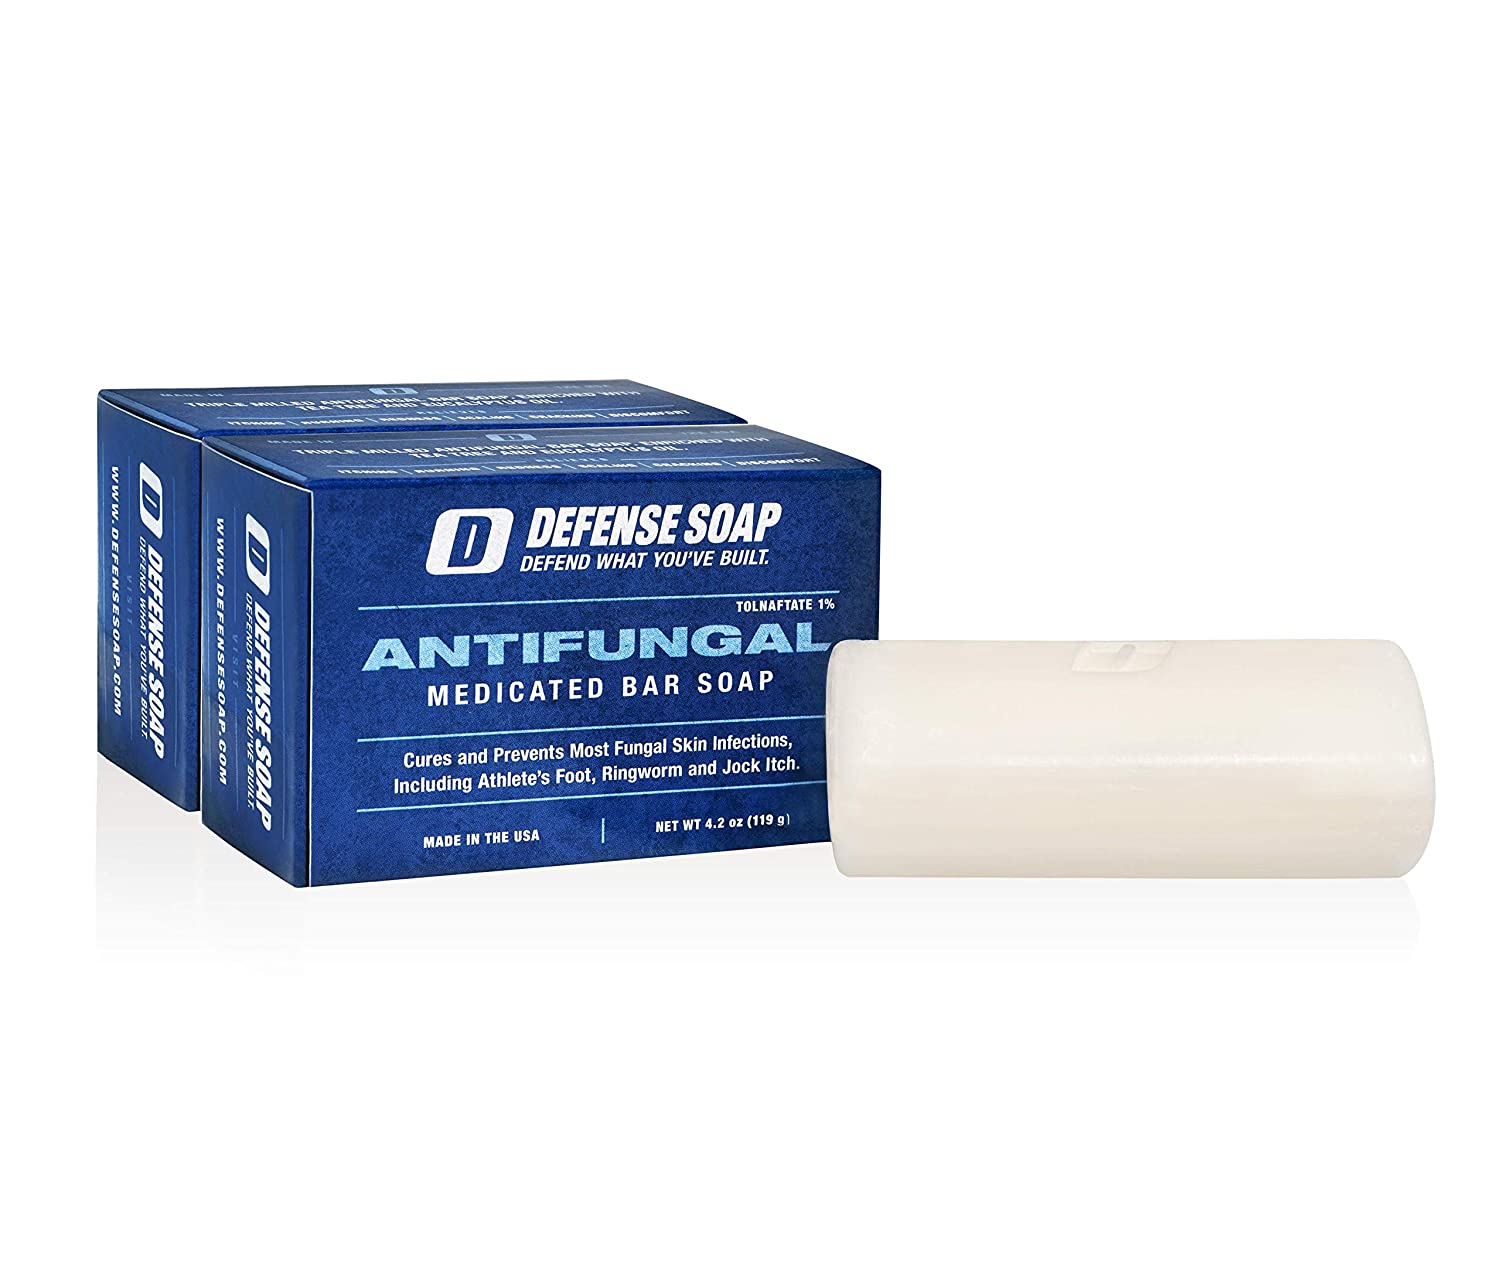 Defense Antifungal Medicated Bar Soap best Anti-fungal Soaps